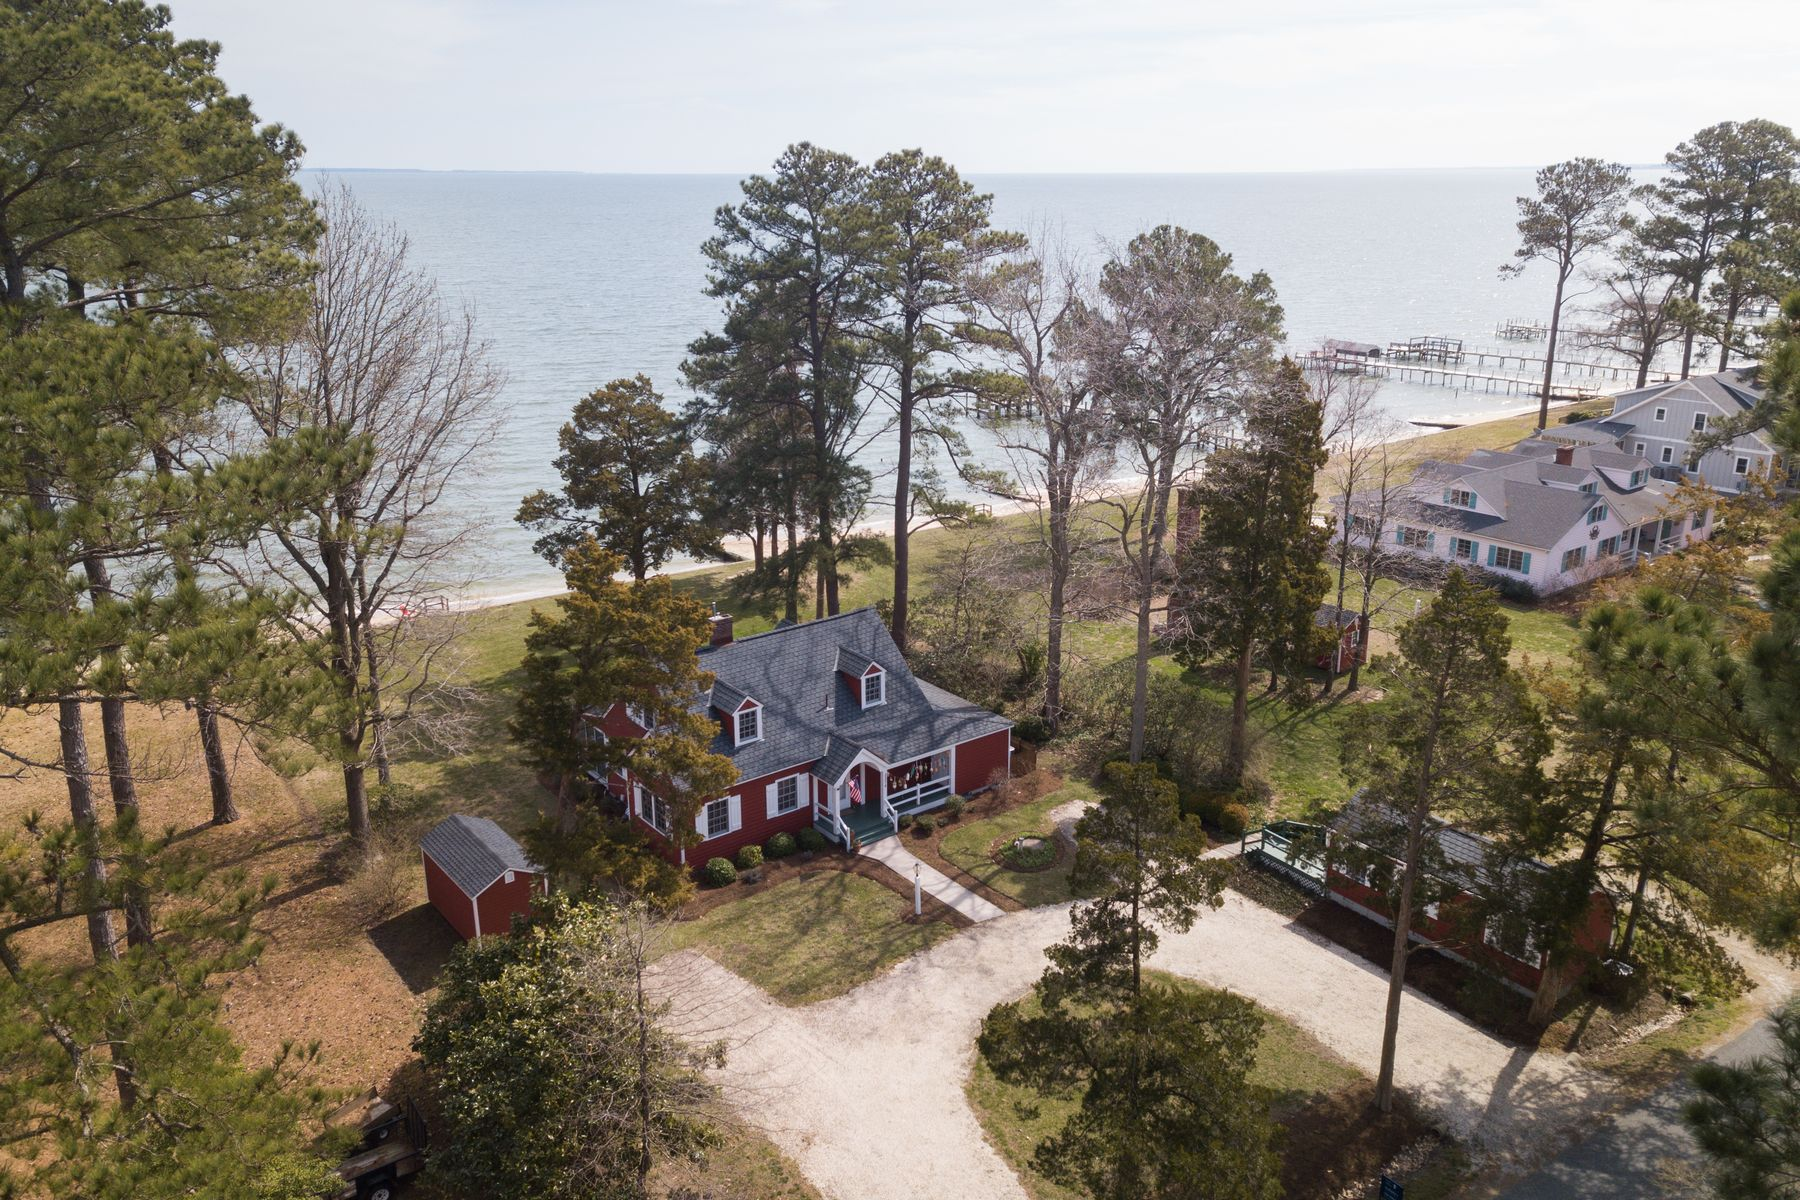 Single Family Homes for Sale at The Red Cottage 3378 Skipjack Road, Kinsale, Virginia 22488 United States